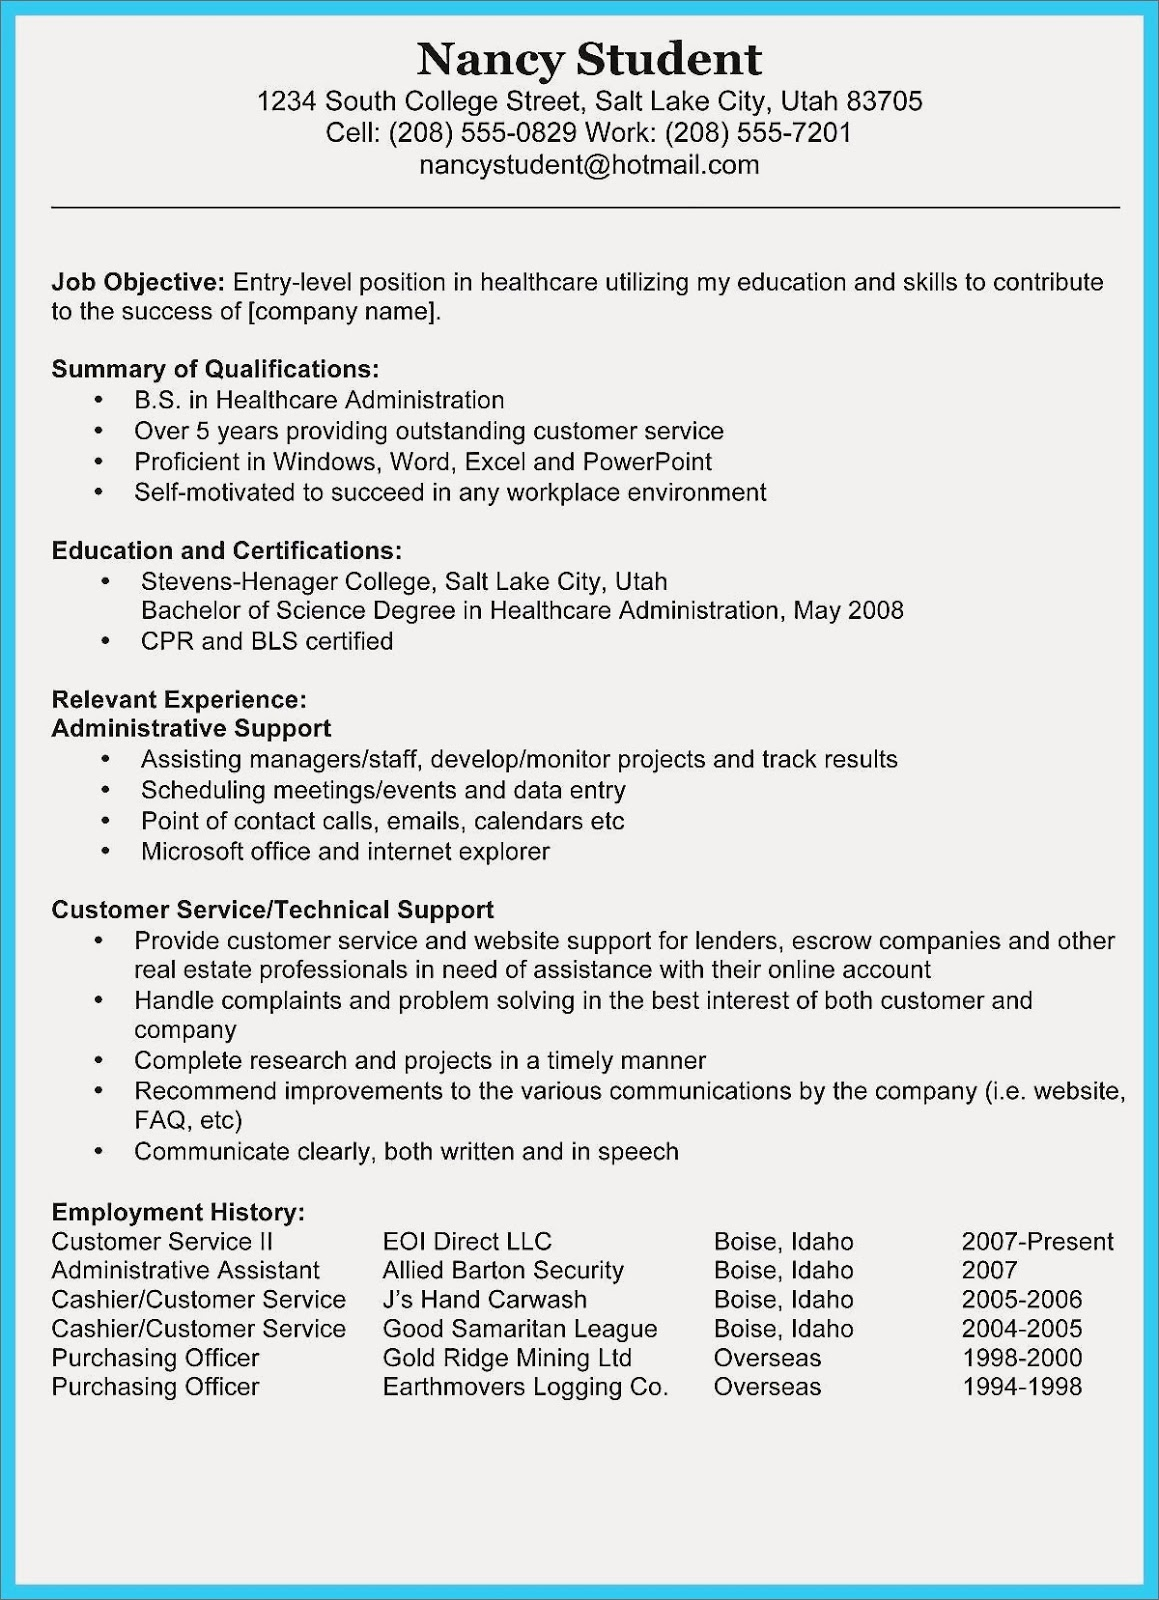 a good resume title a good resume title for customer service what is a good resume title for careerbuilder example of a good resume title a good title for a resume what would be a good resume title good resume title examples good resume title for warehouse worker good resume title for freshers good resume title for administrative assistant good resume title for monster good resume title for receptionist good resume